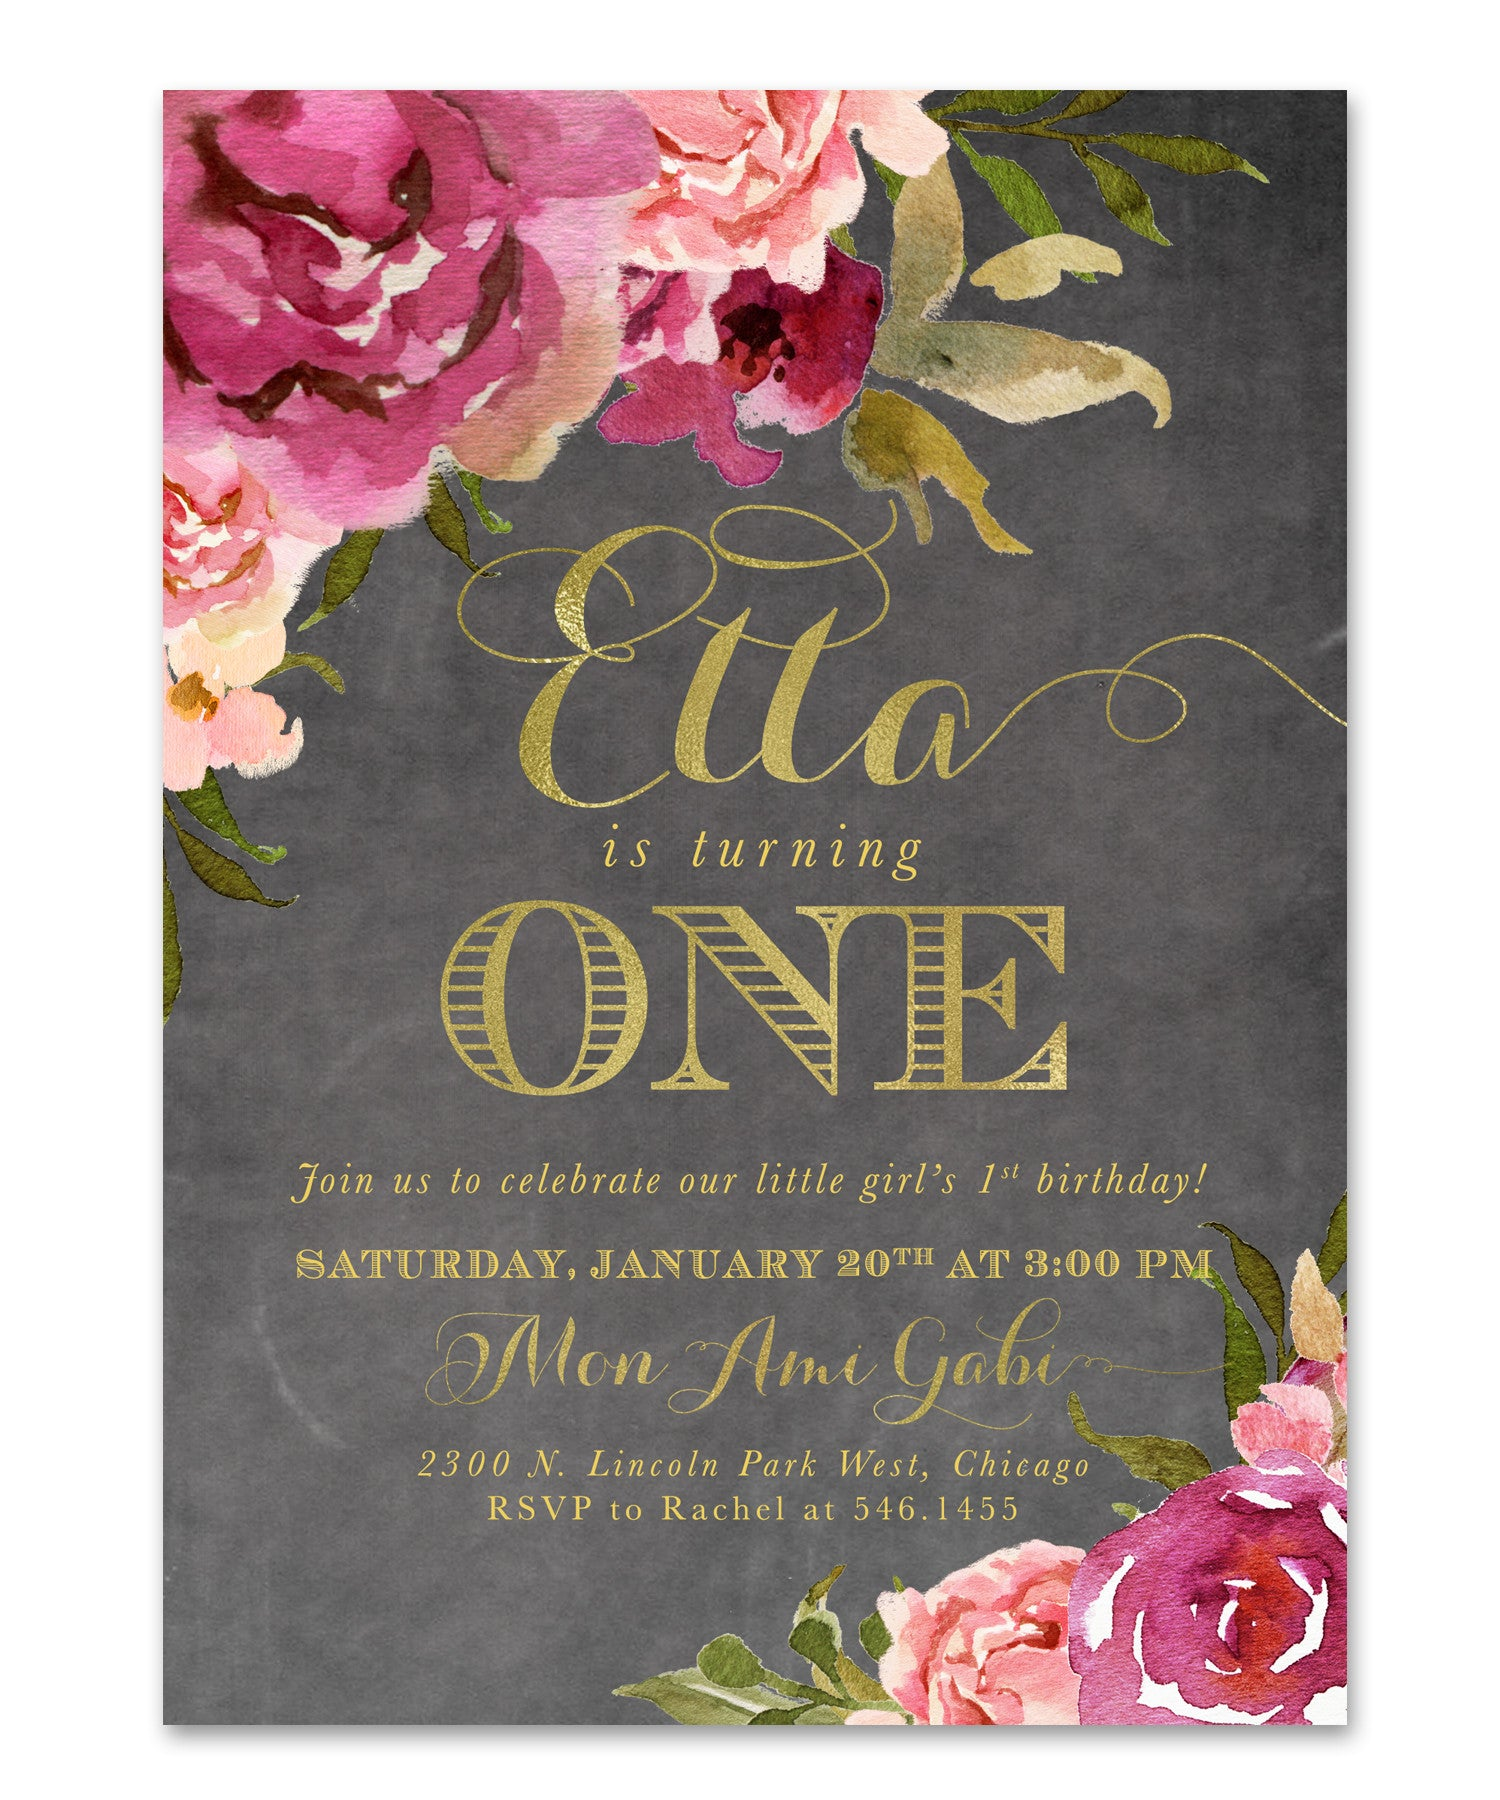 Etta girl first birthday party invitation burgundy blush pink etta girl first birthday party invitation merlot blush pink gold chalkboard floral filmwisefo